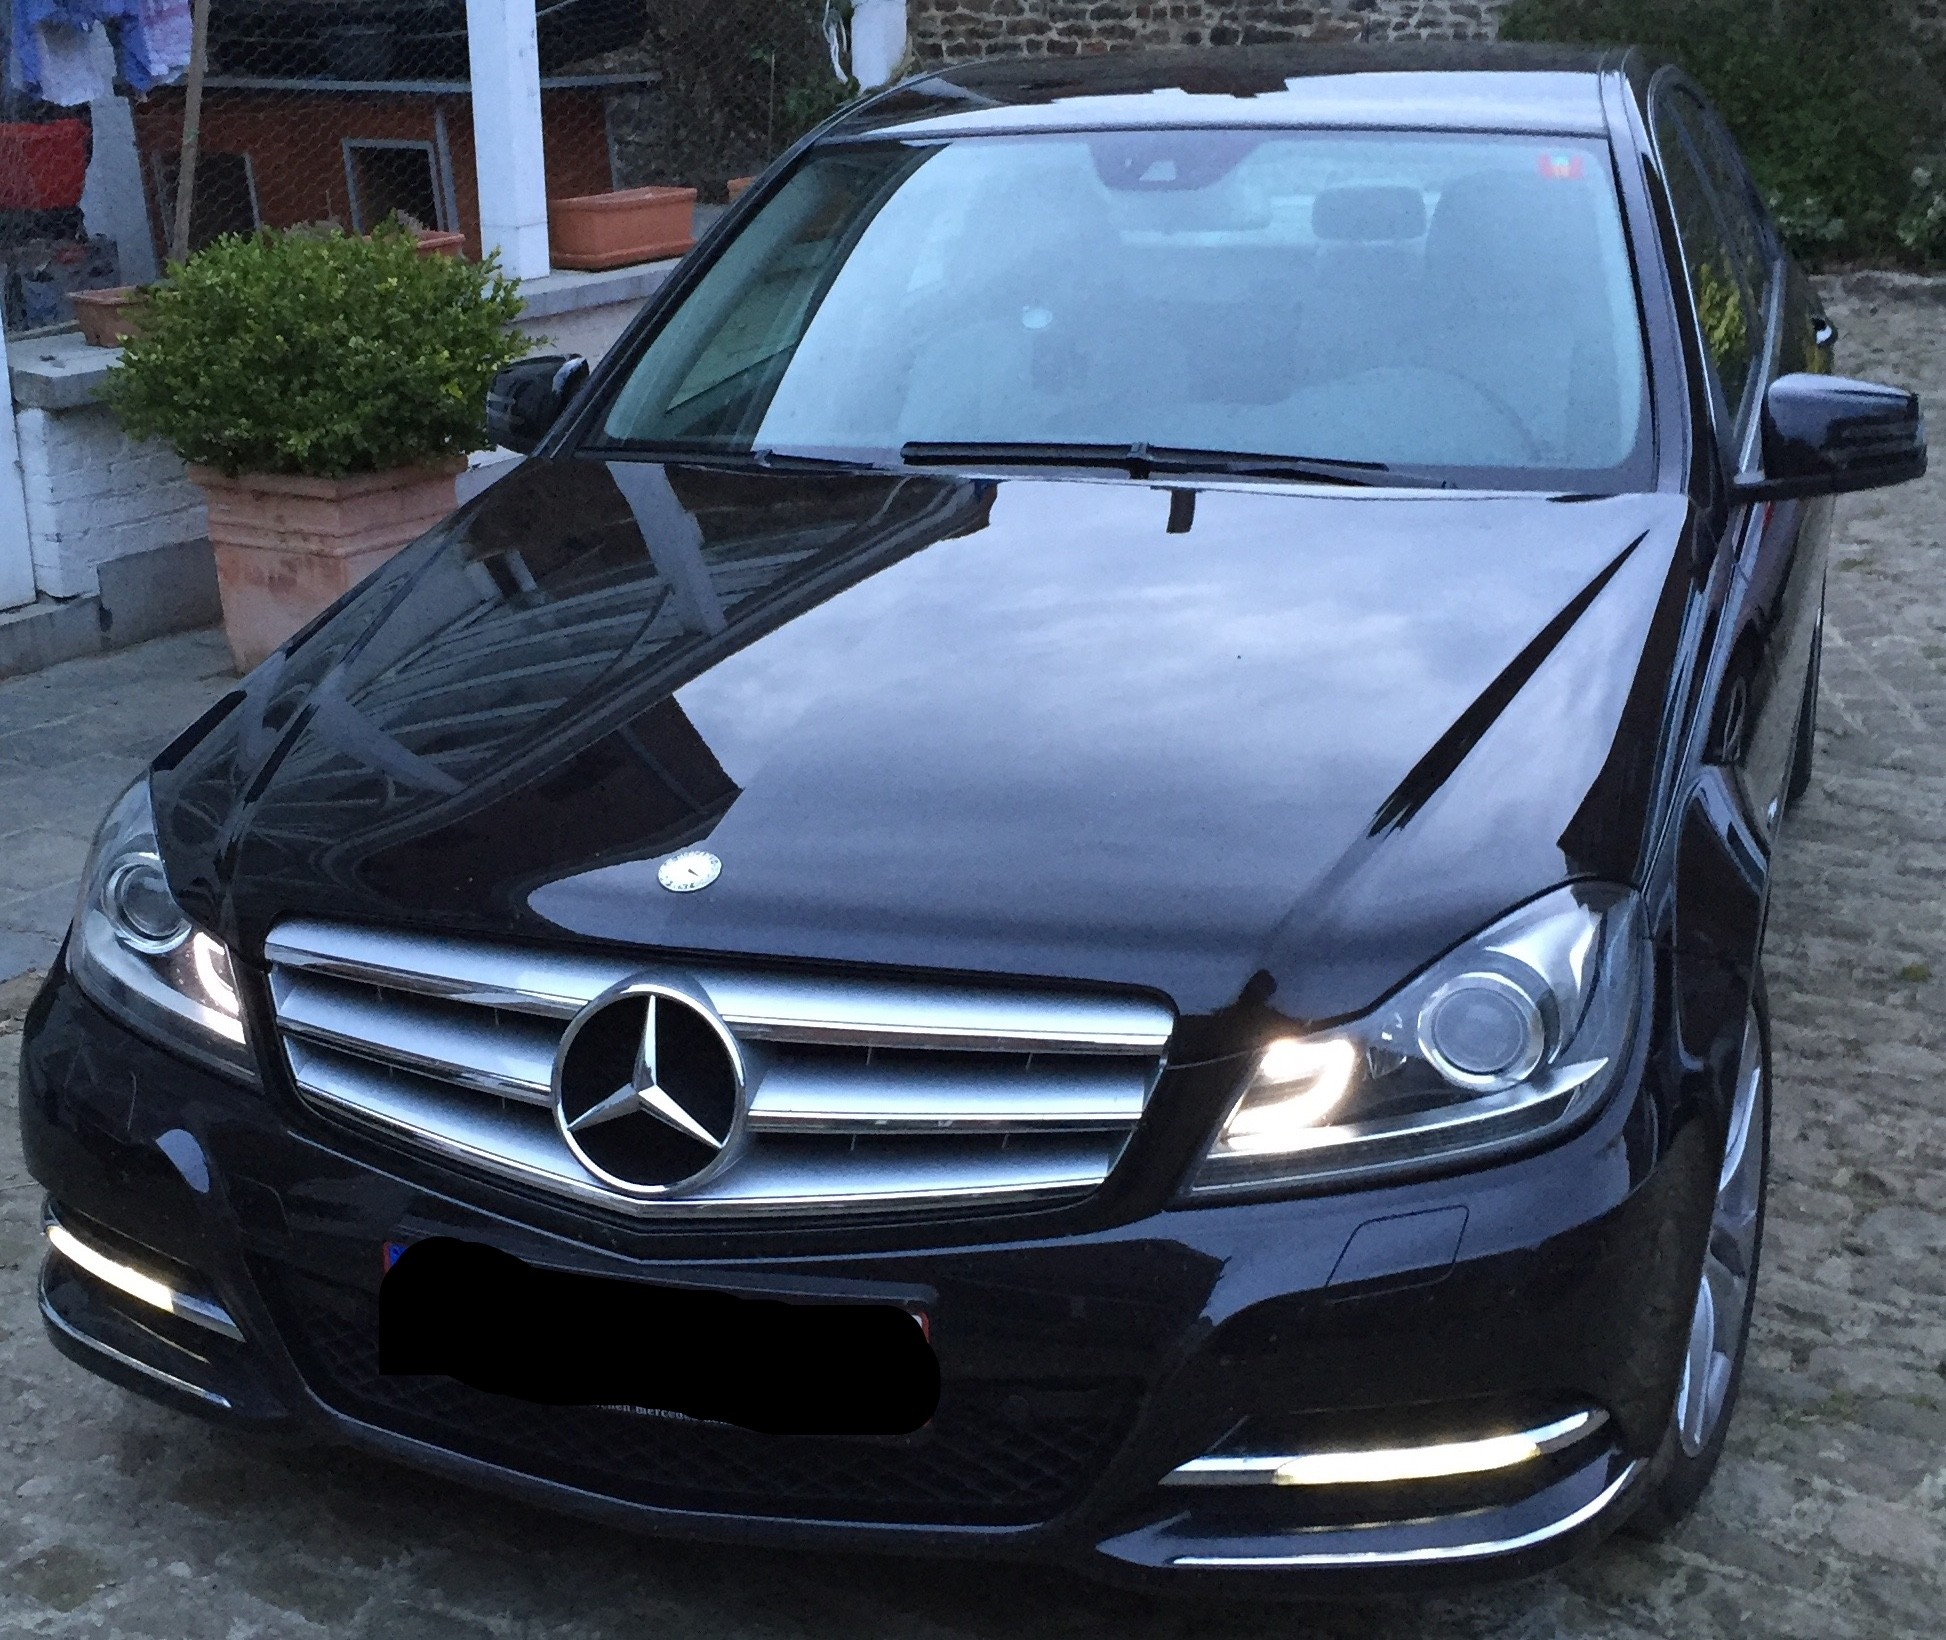 mercedes classe c 250 4matic facelift vente annonces auto et accessoires forum pratique. Black Bedroom Furniture Sets. Home Design Ideas